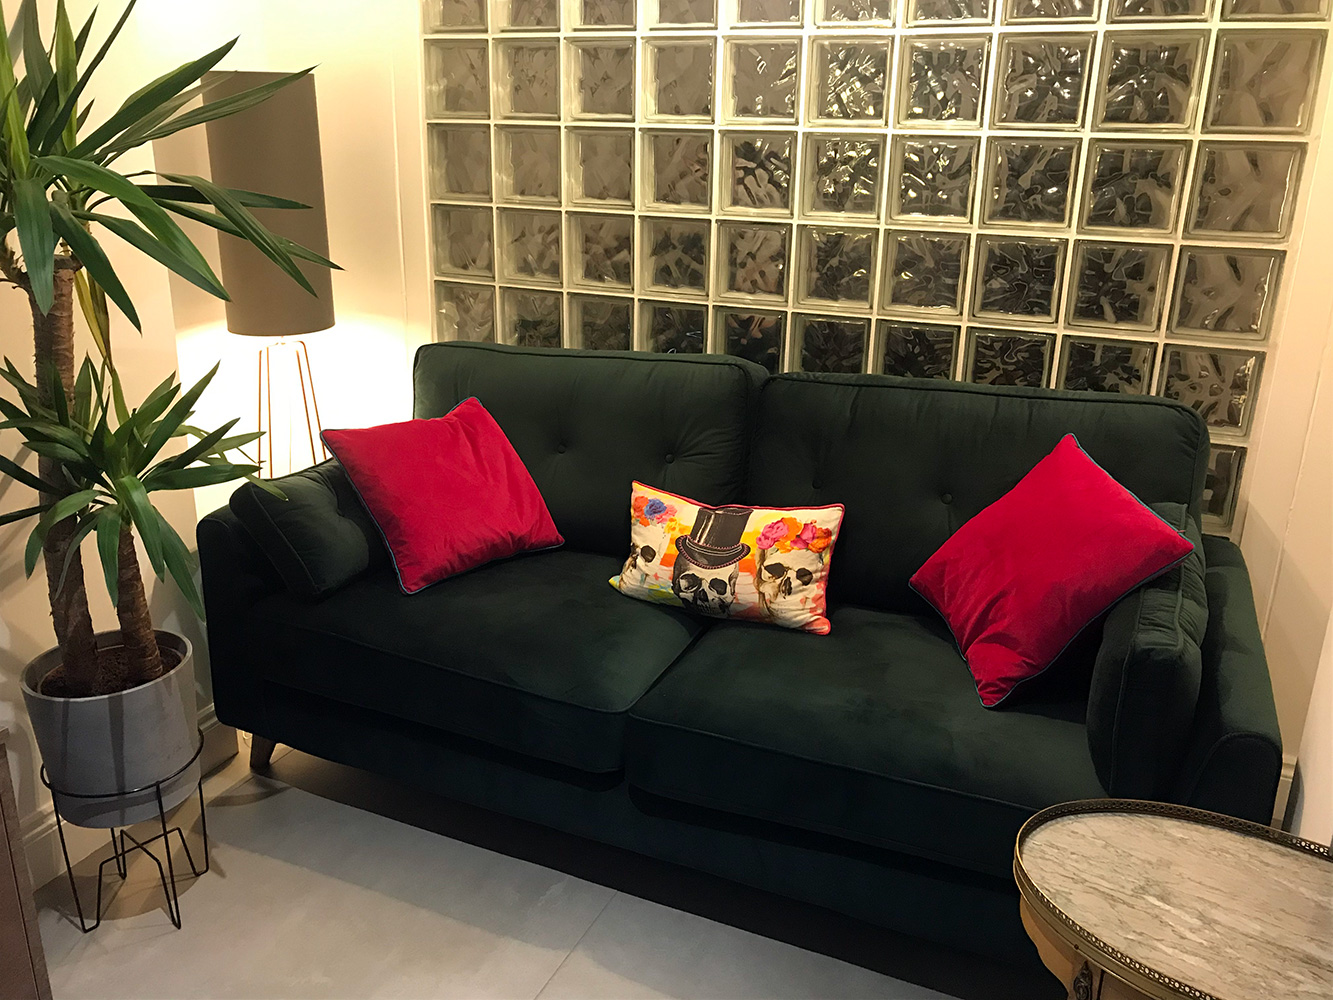 Green Magnus sofa from Kevin